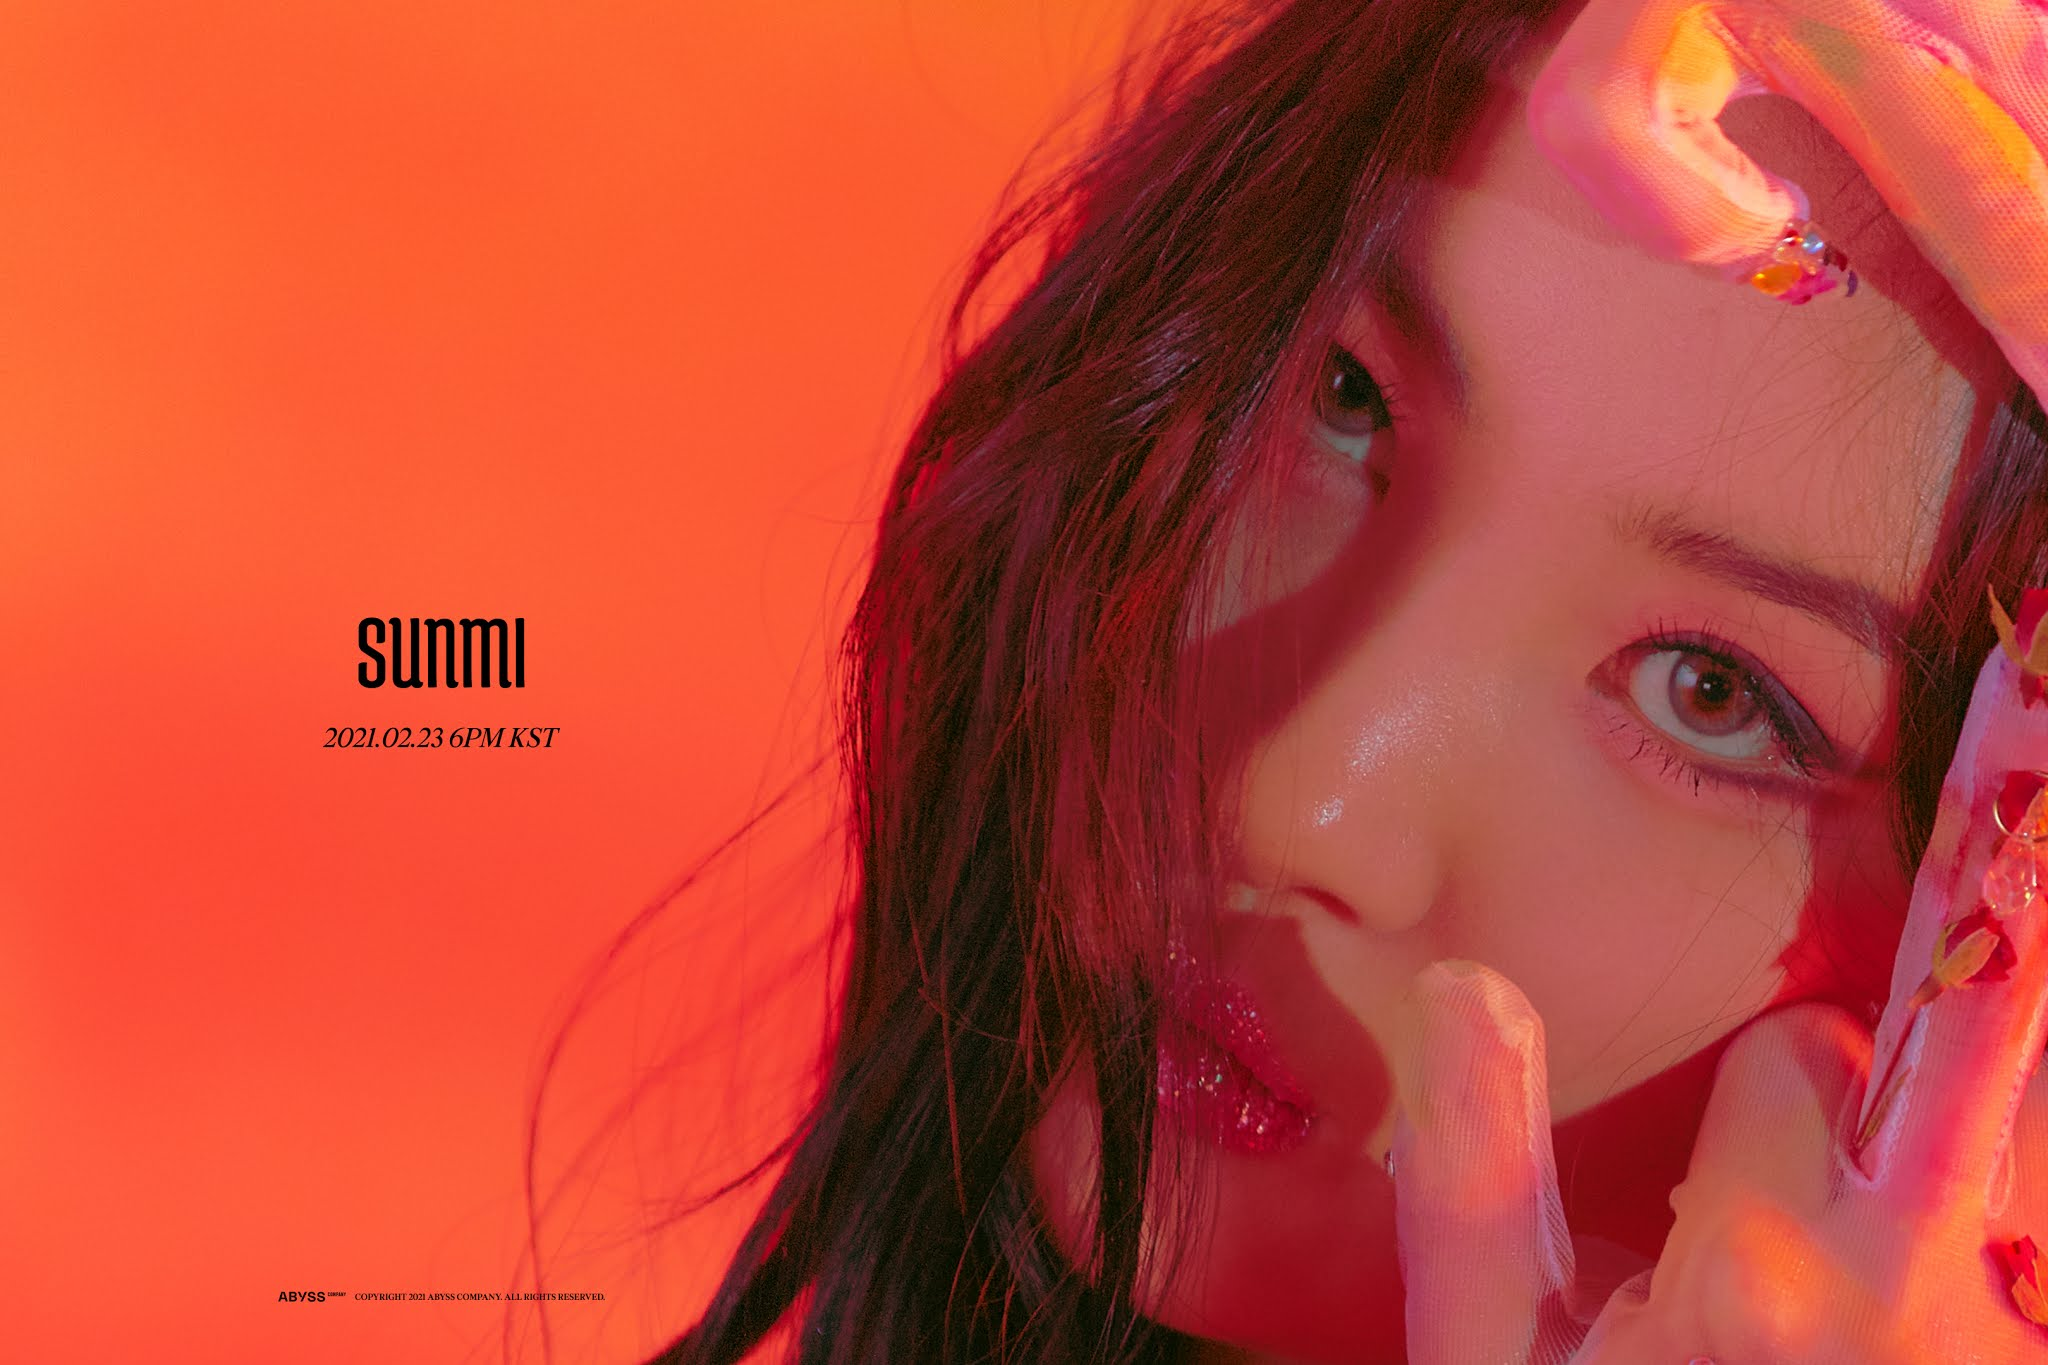 선미(SUNMI) 꼬리(TAIL) ALBUM TRACK SPOILER VIDEO / PHOTO